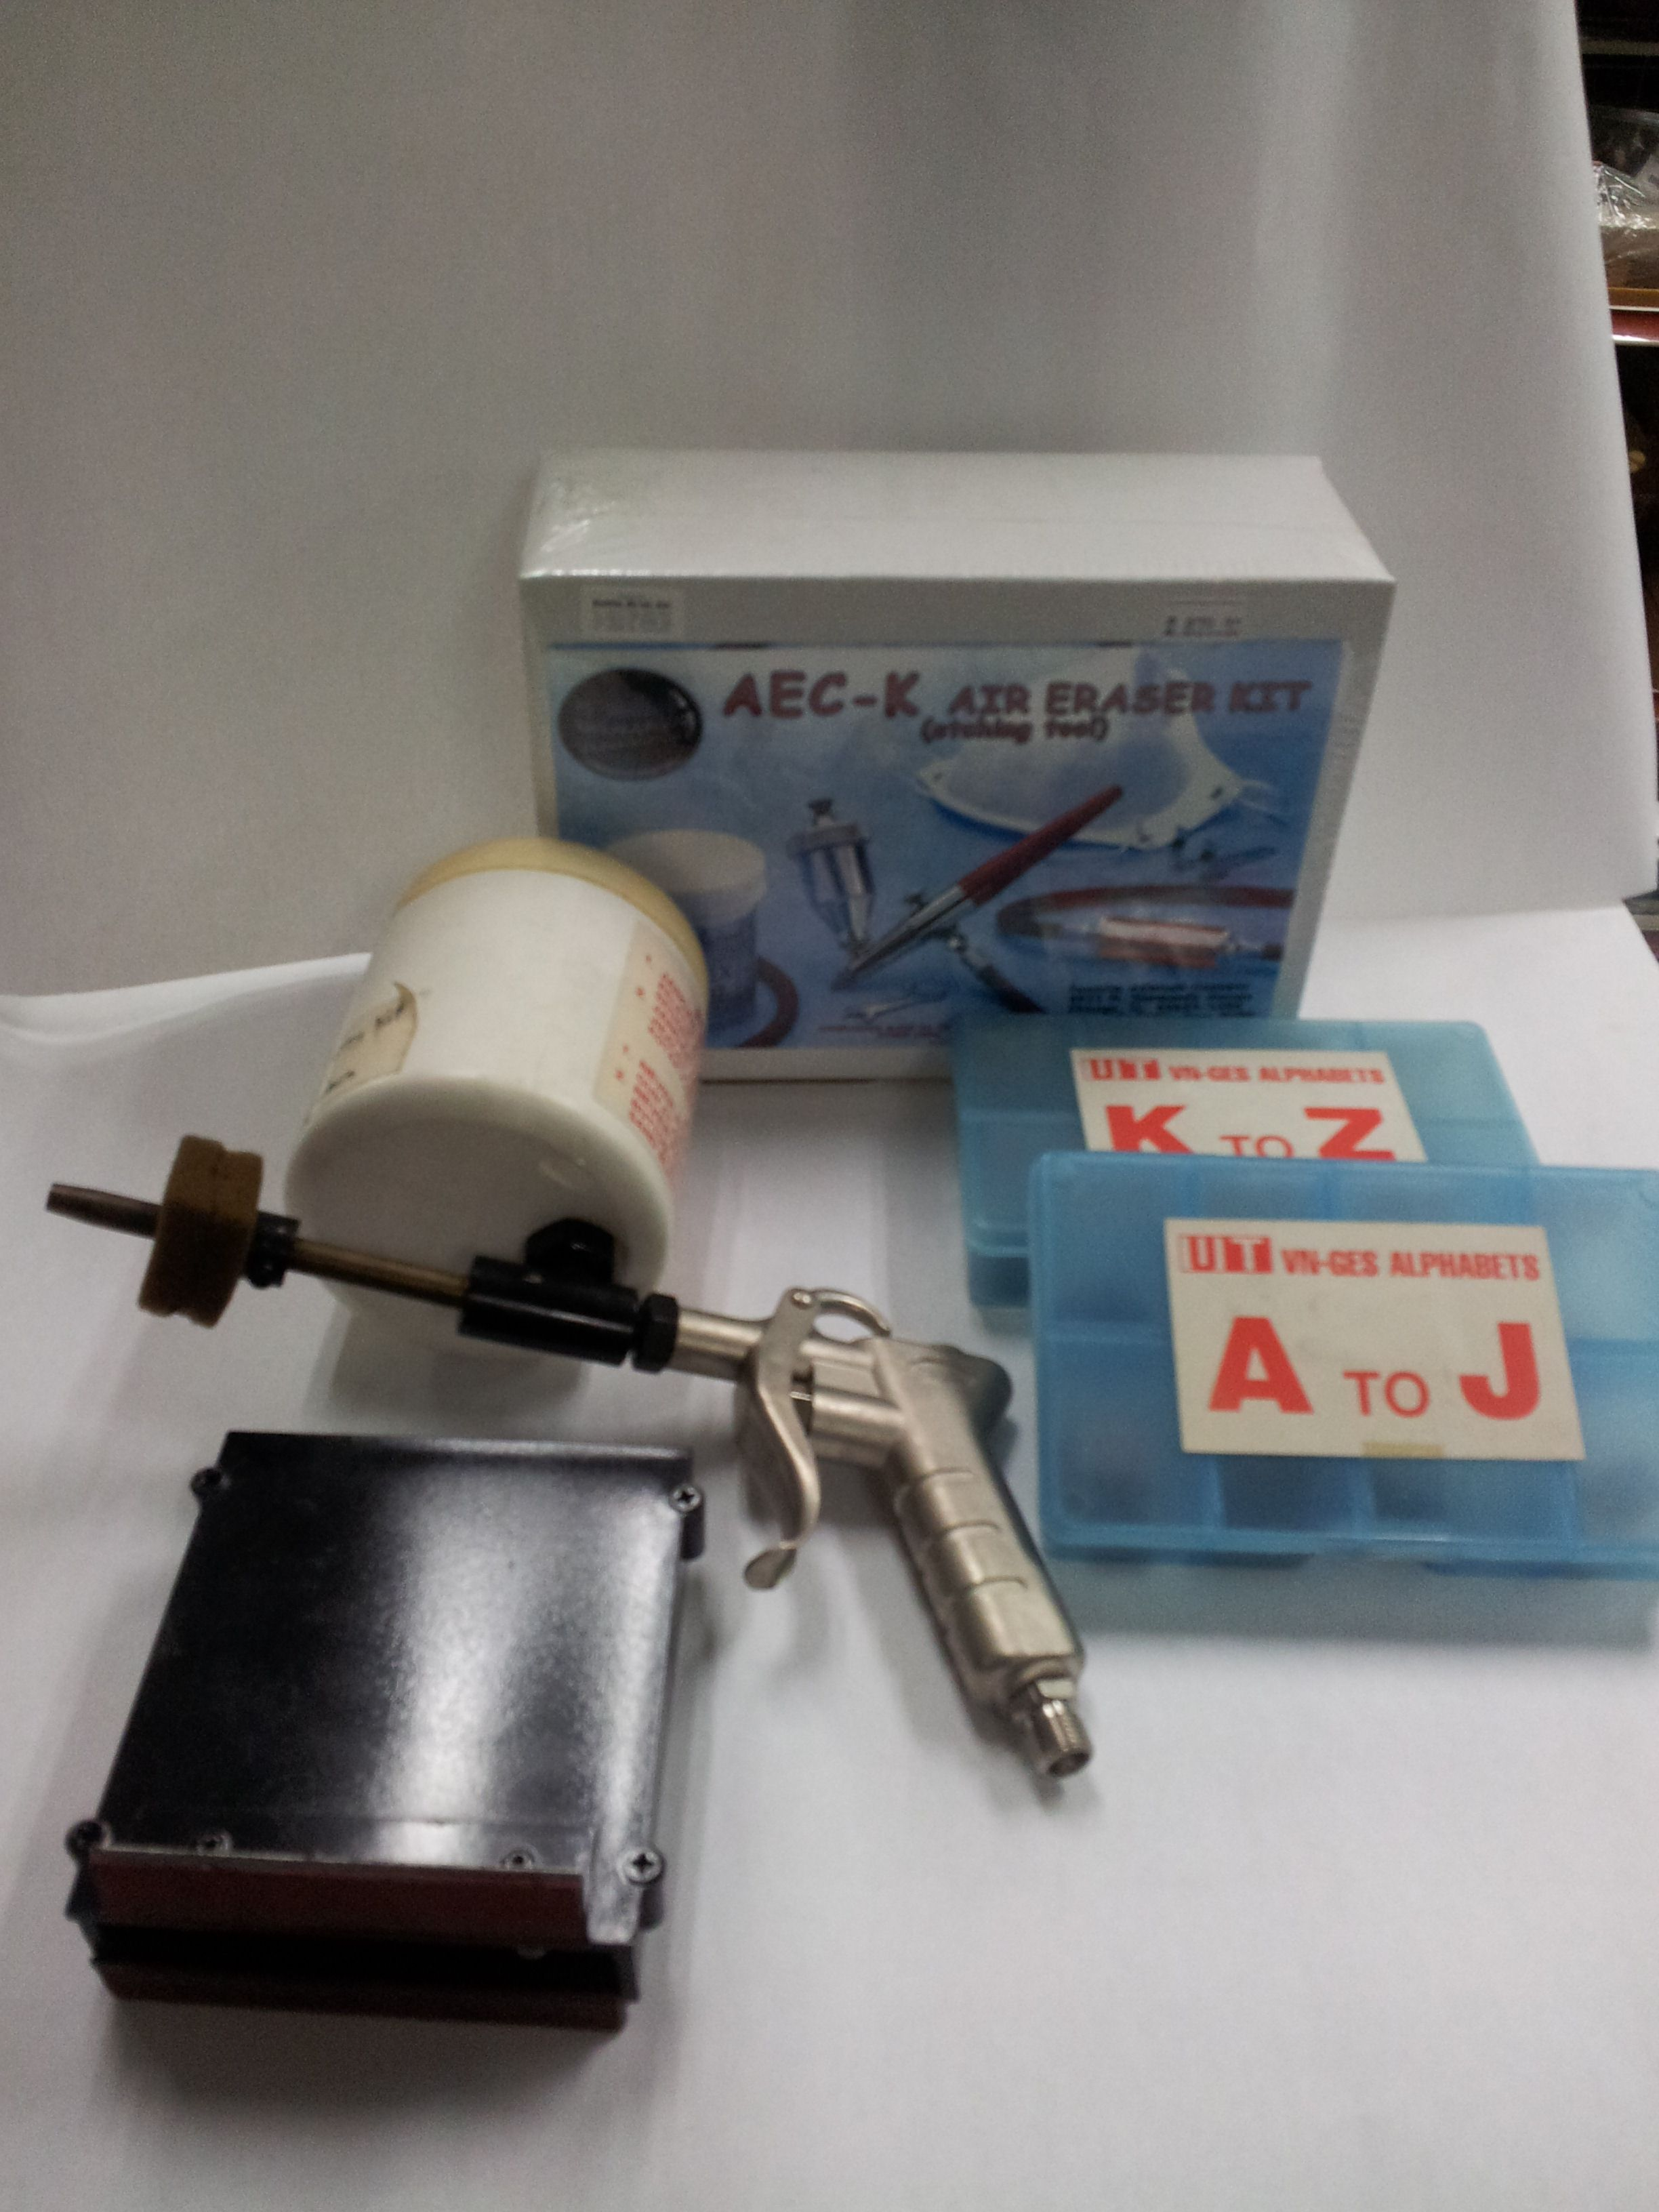 Sand blaster kit for glass, metal, wood, plastic and stone